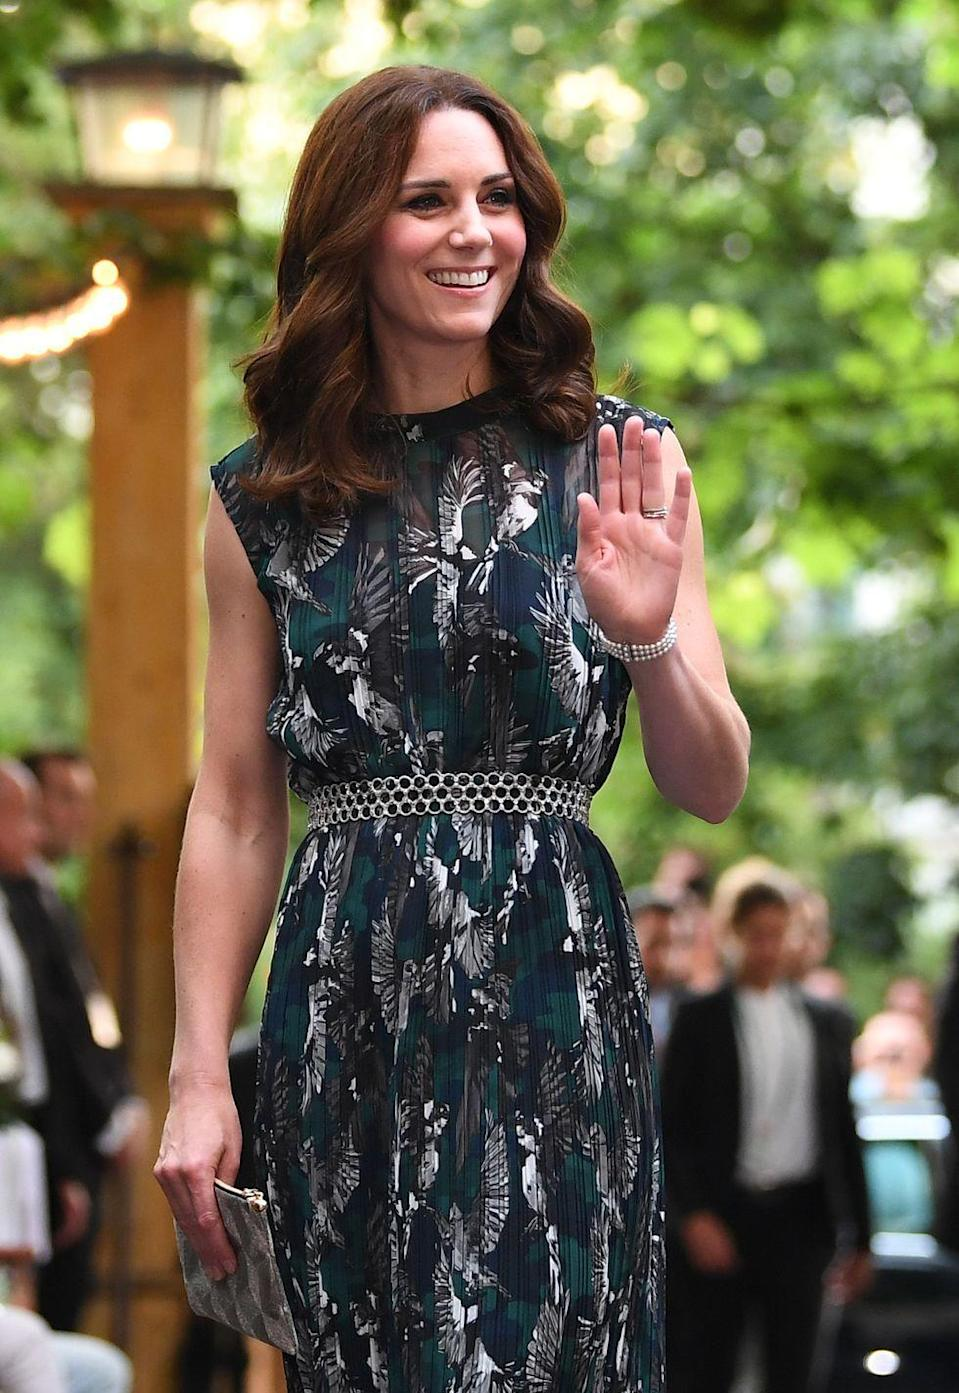 """<p><em>Marie Claire UK</em> says <a href=""""https://www.marieclaire.co.uk/news/fashion-news/hidden-detail-kate-middleton-berlin-dress-524709#LLhhfaMlj6qsTjha.99"""" rel=""""nofollow noopener"""" target=""""_blank"""" data-ylk=""""slk:the same goes for the striking eagles in flight dress"""" class=""""link rapid-noclick-resp"""">the same goes for the striking eagles in flight dress</a> that Kate wore her last night in Germany in 2017, where eagles are the national bird. The dress also was created by a German designer. </p>"""